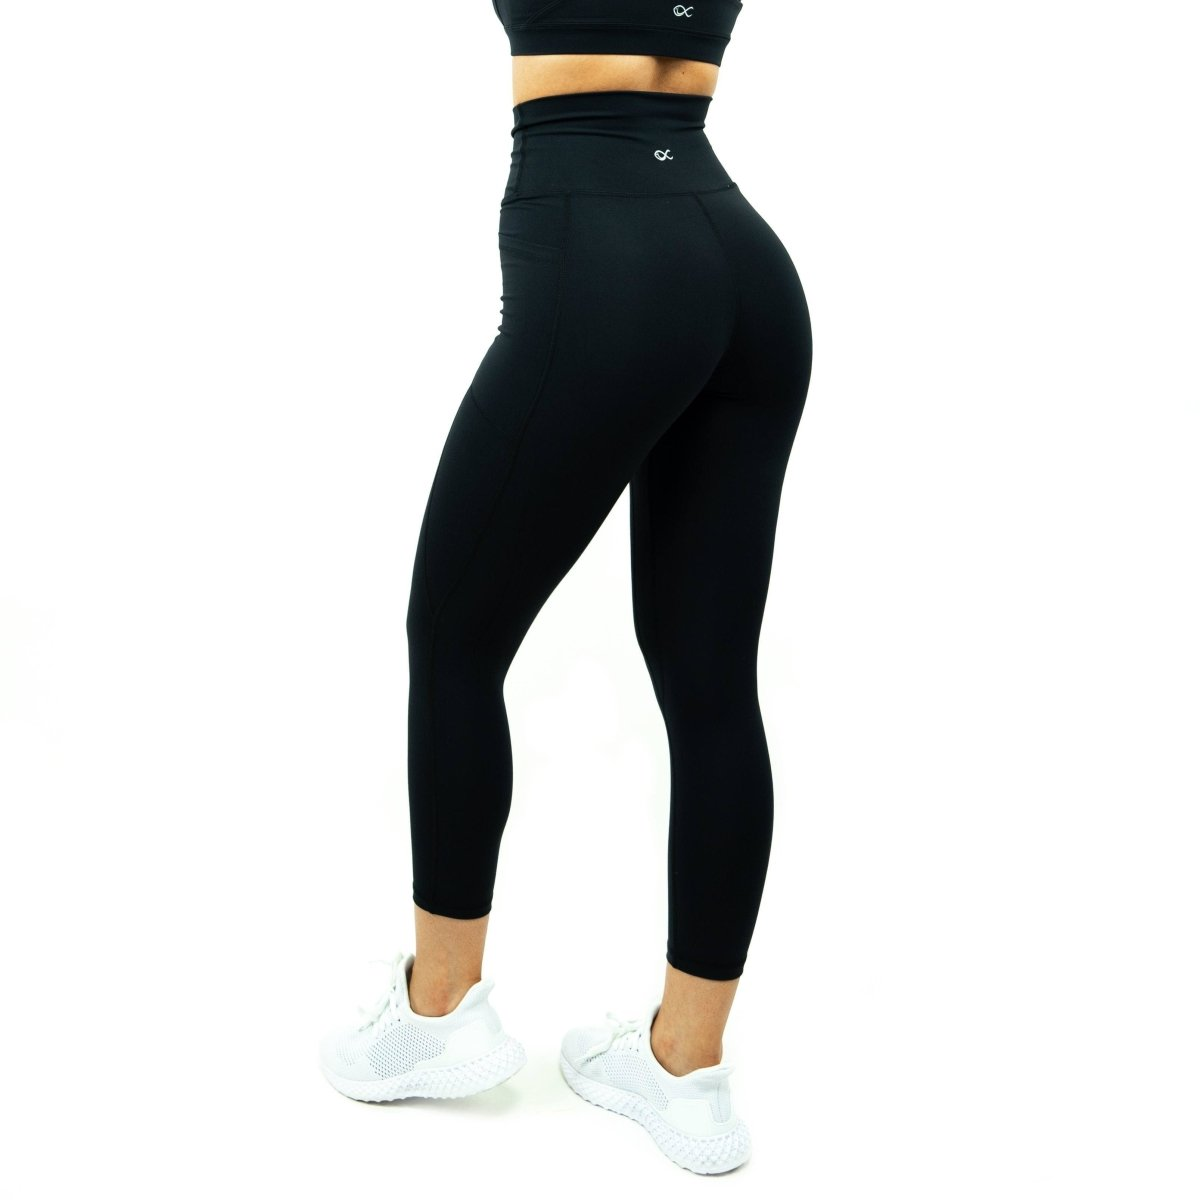 Pocket Leggings in Black - Southern Athletica